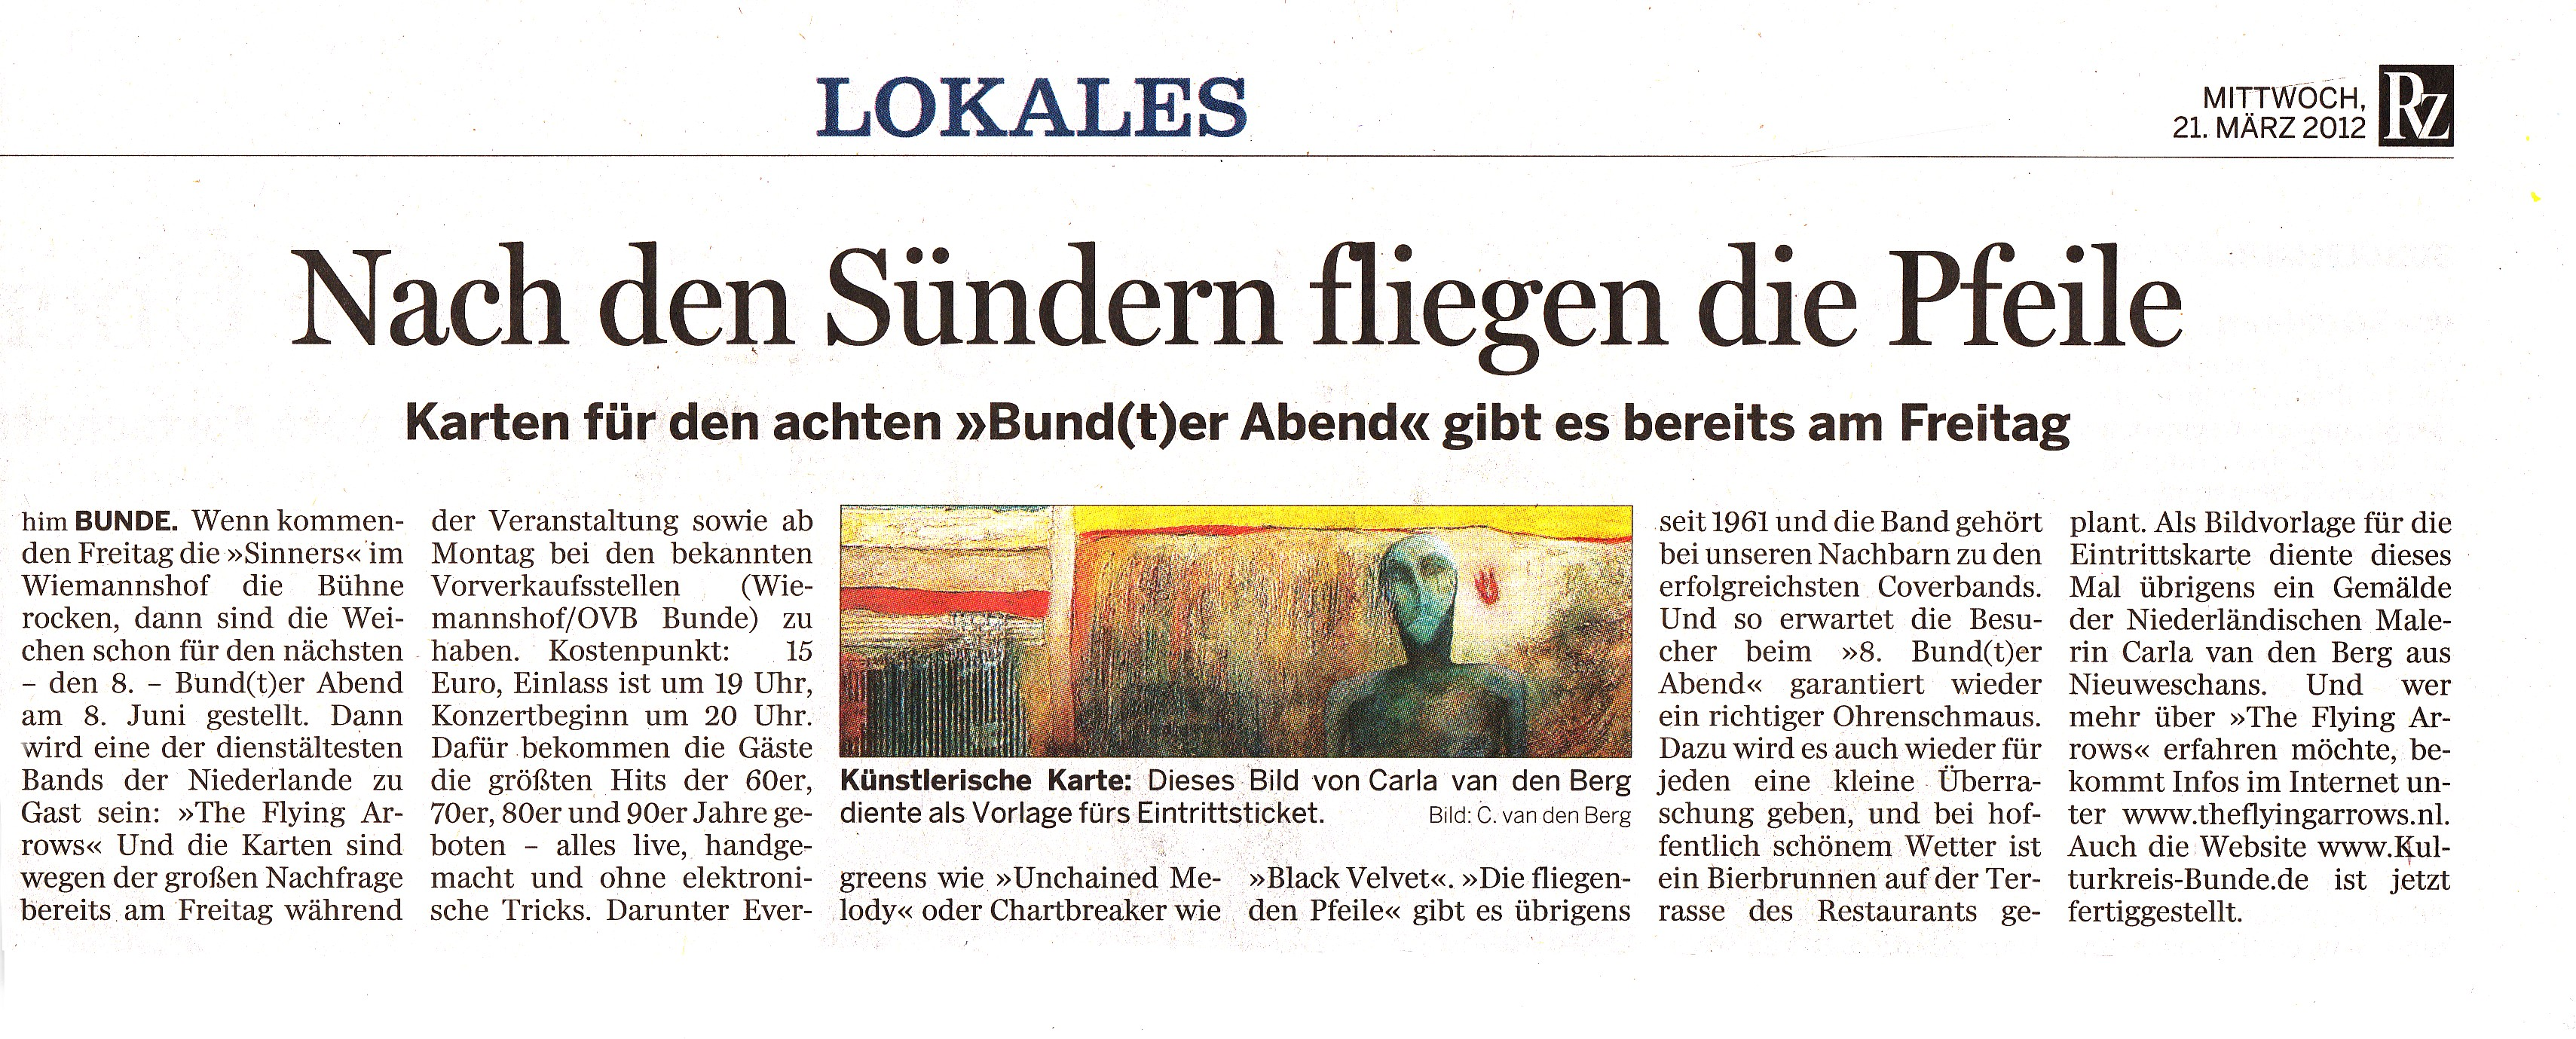 18 Rheiderland-Zeitung The Flying Arrows  21.03.2012